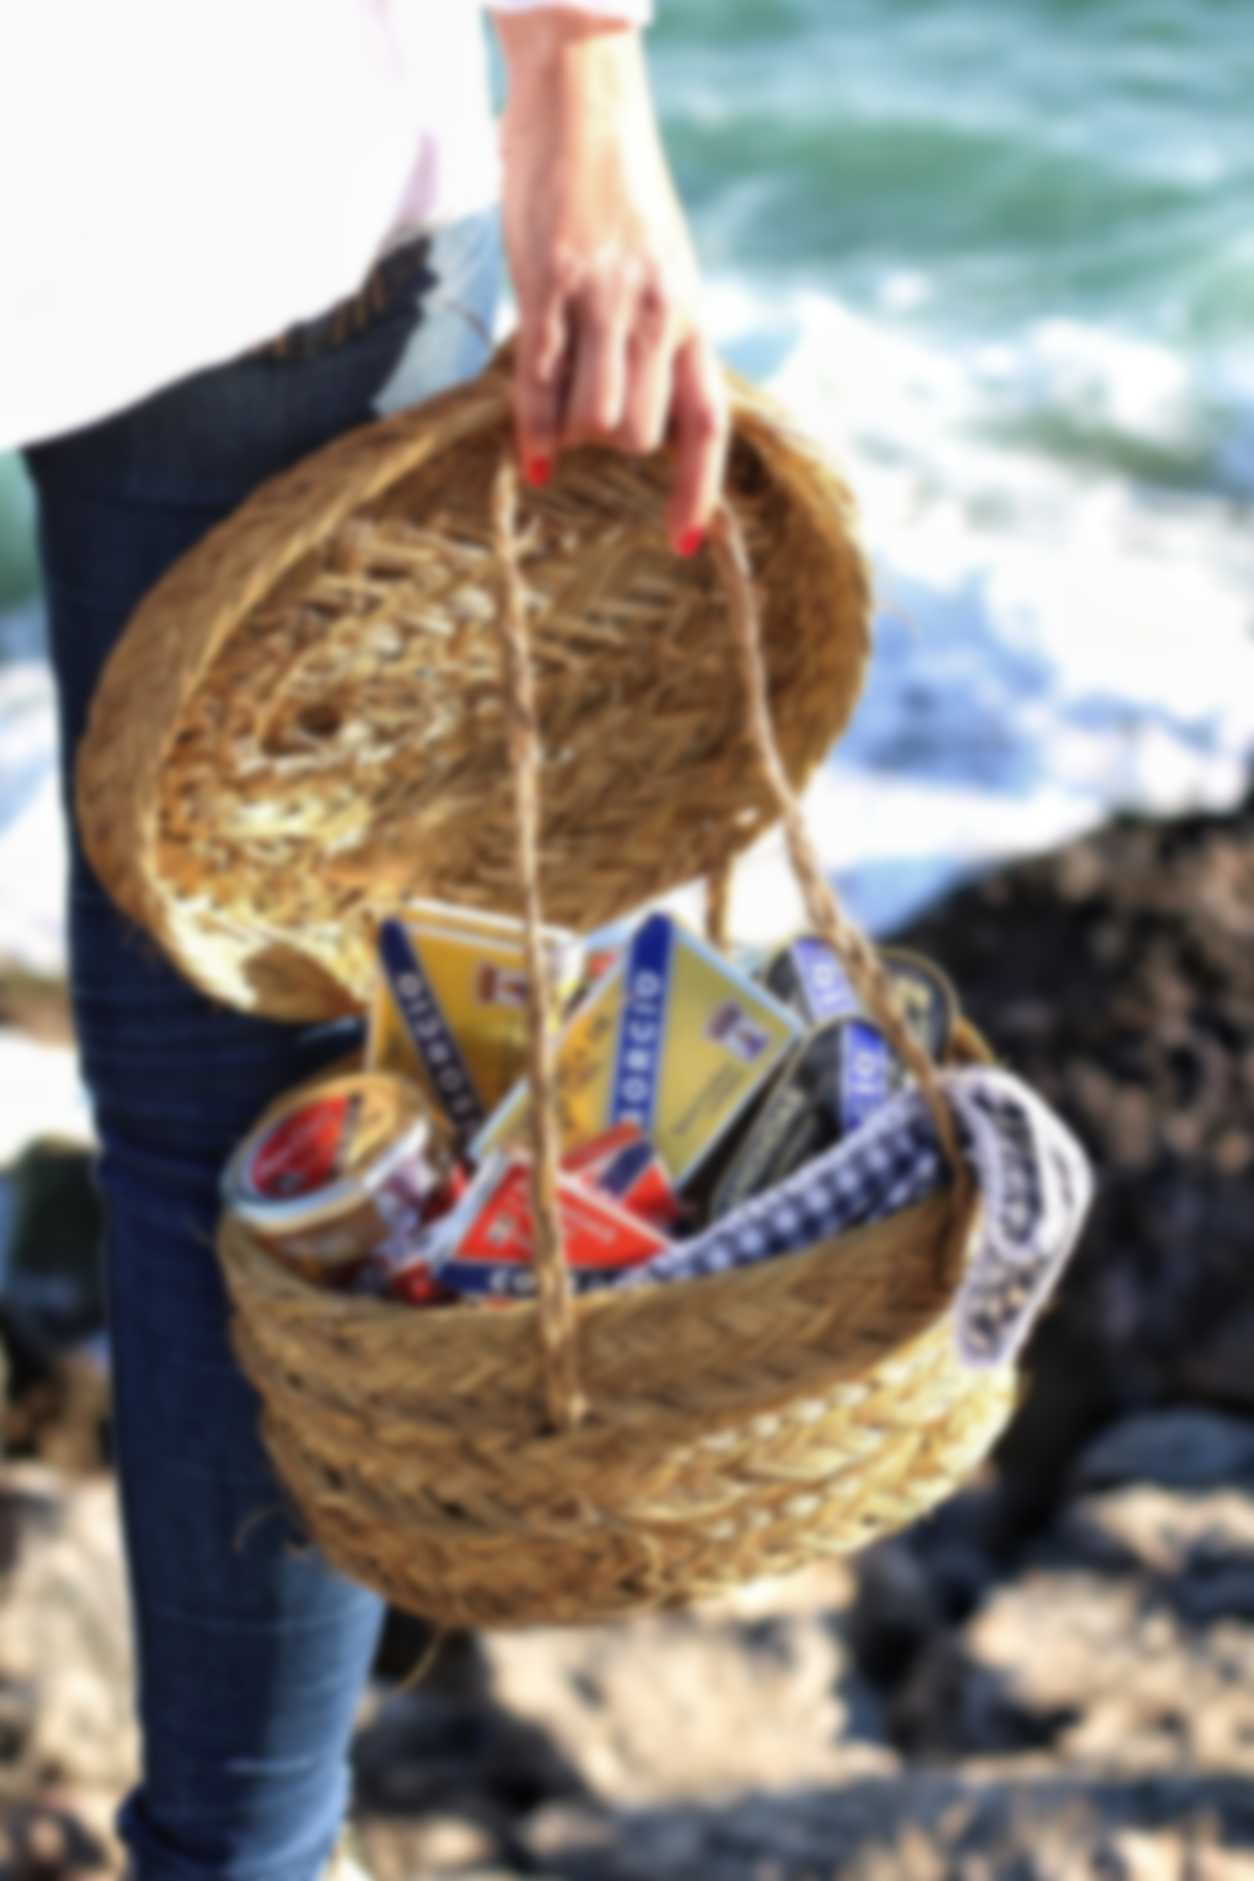 A basket of Consorcio products